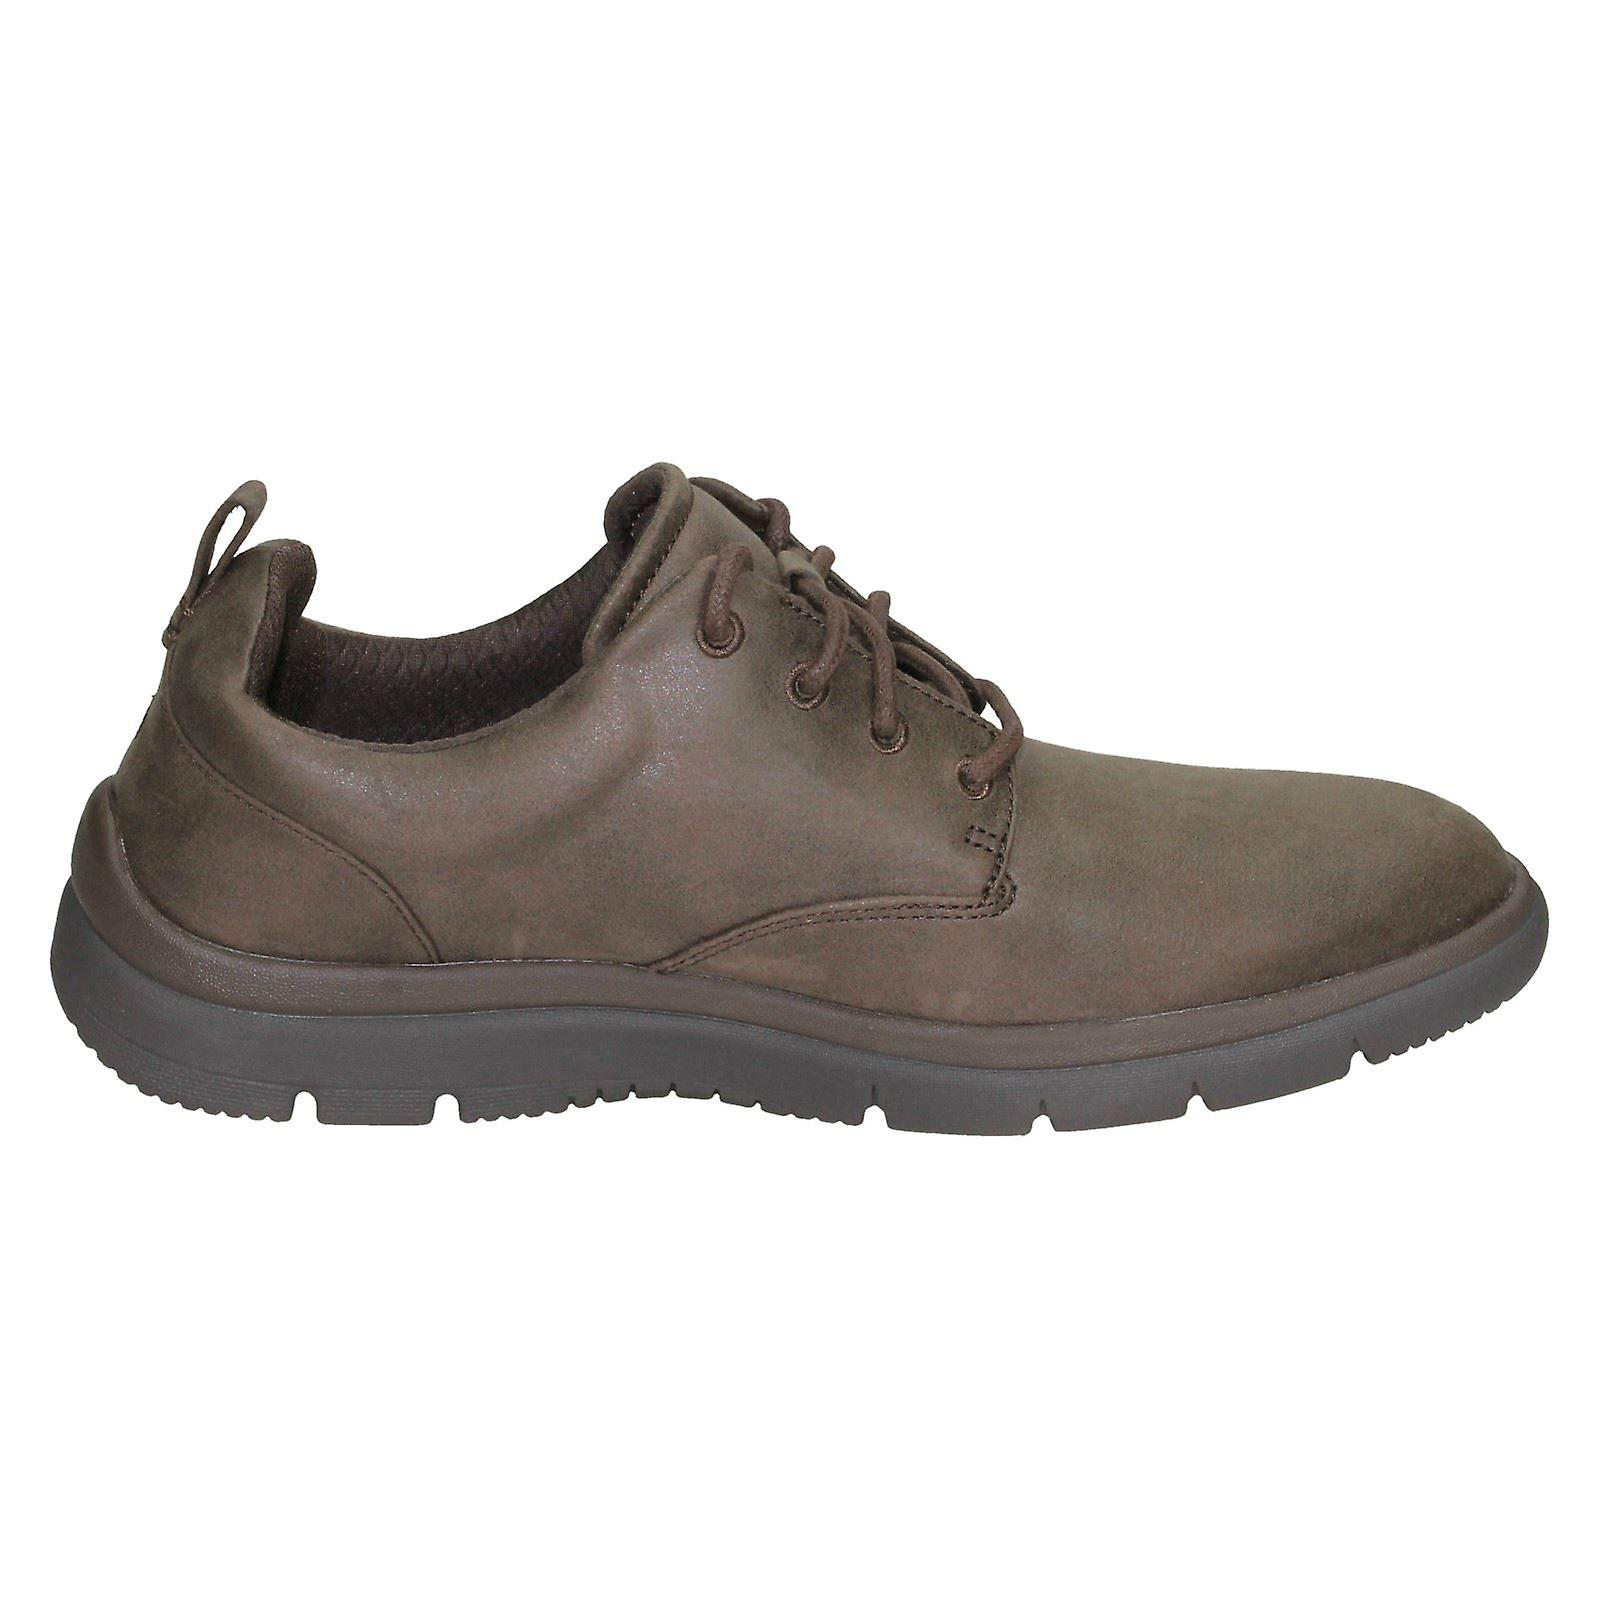 Mens Clarks Casual Cloudsteppers Tunsil Lane